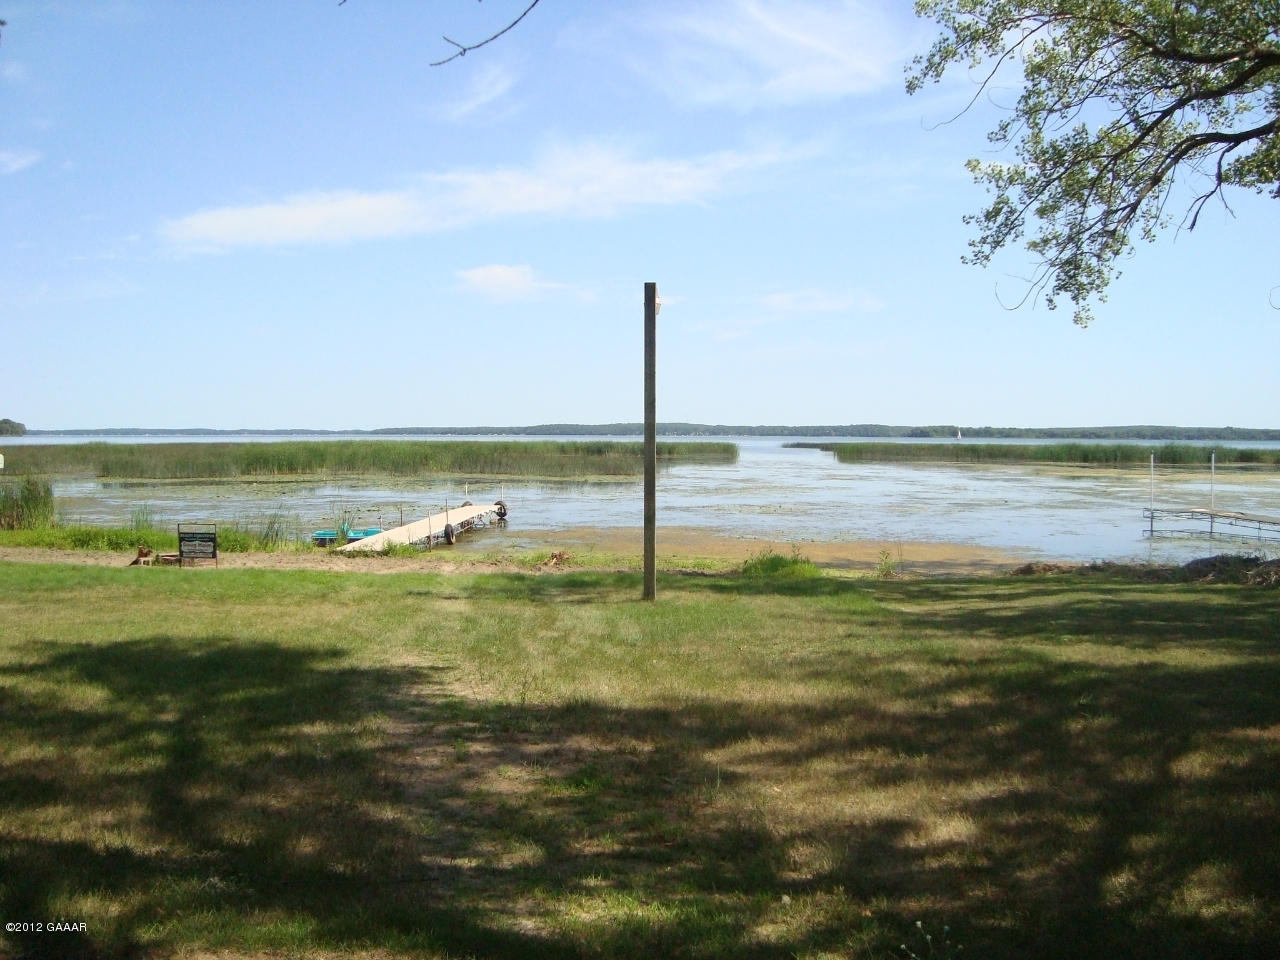 primary photo for 15563 Dittberners Creek Road NW, Miltona, MN 56354, US